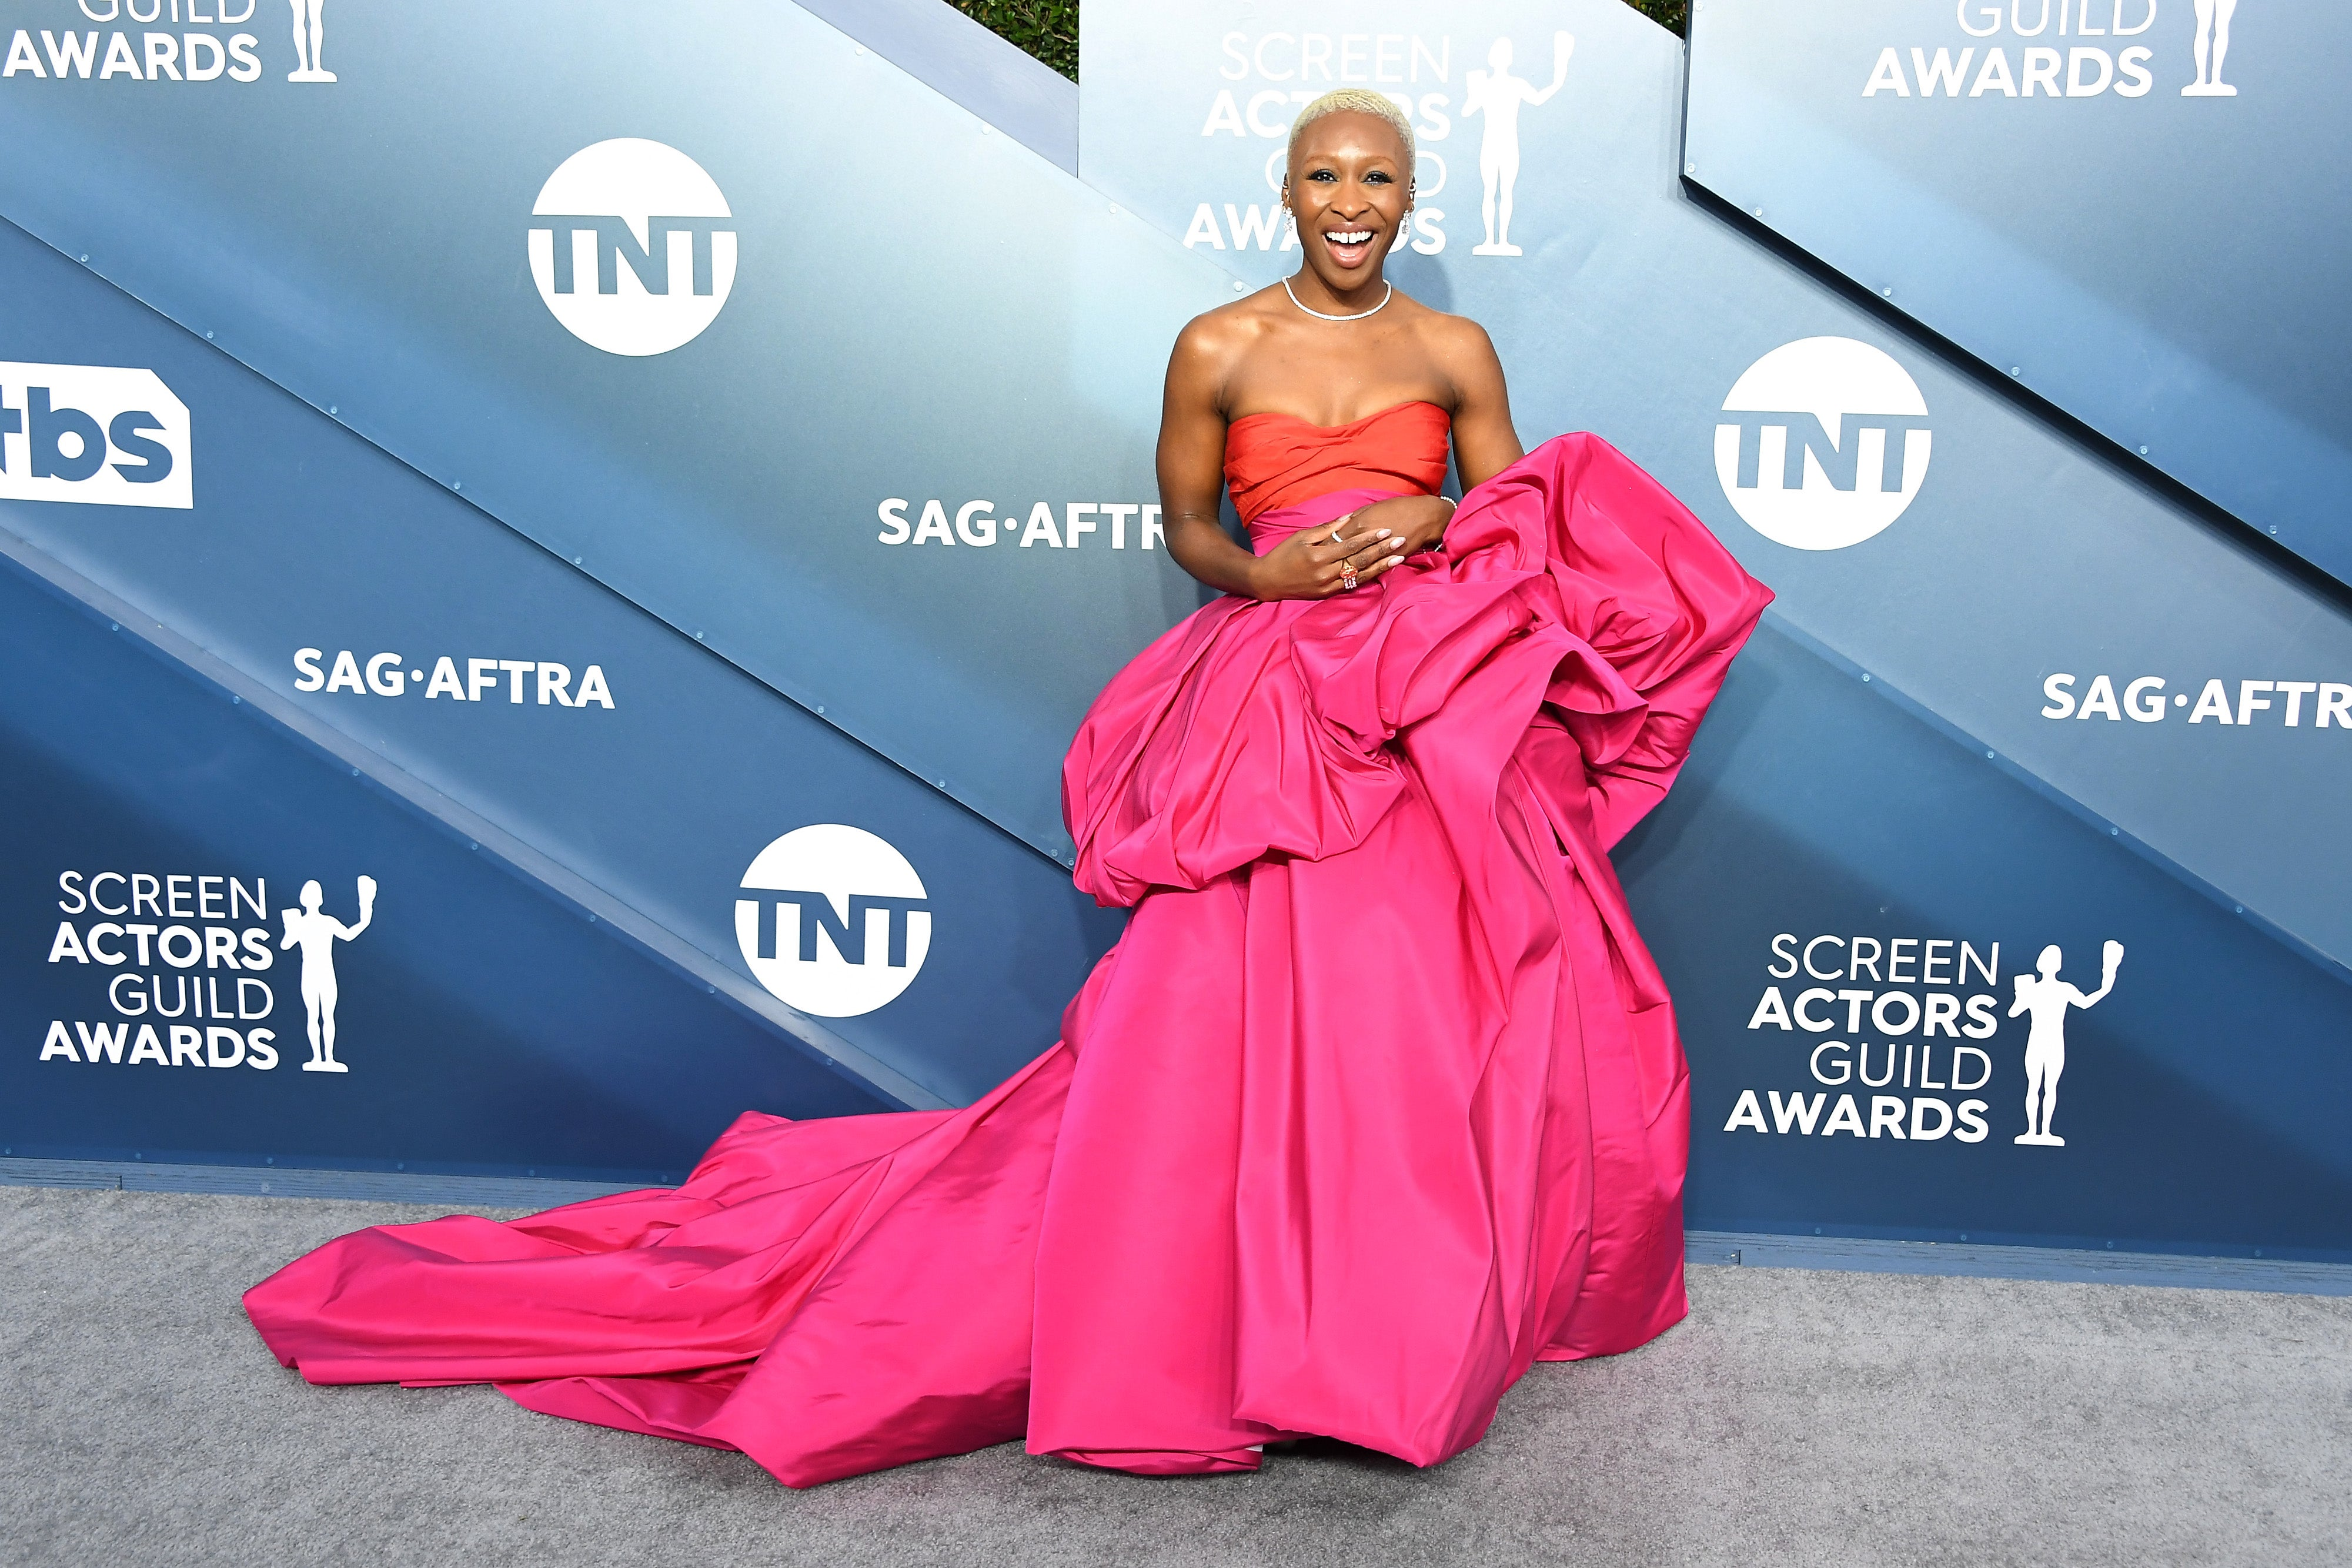 Cynthia Erivo Stuns in Hot Pink Gown With Show-Stopping Train at 2020 SAG Awards